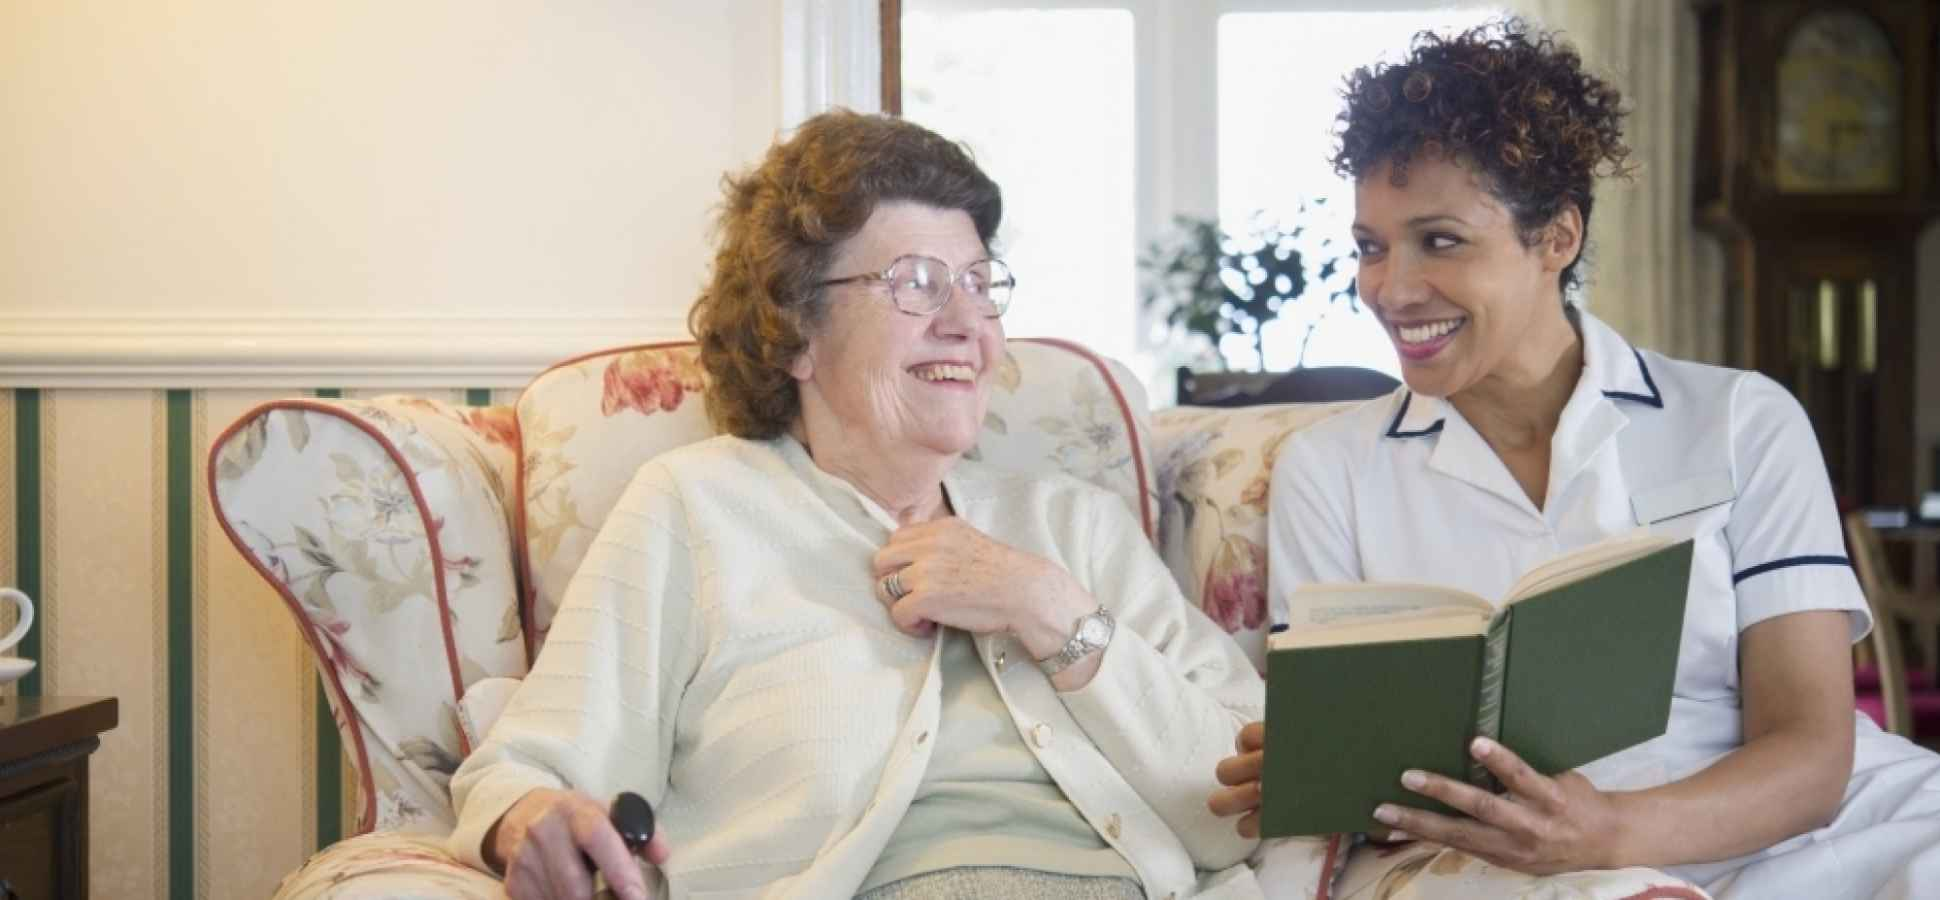 Technology-Enabled Homes Set to Change the Home Care Industry